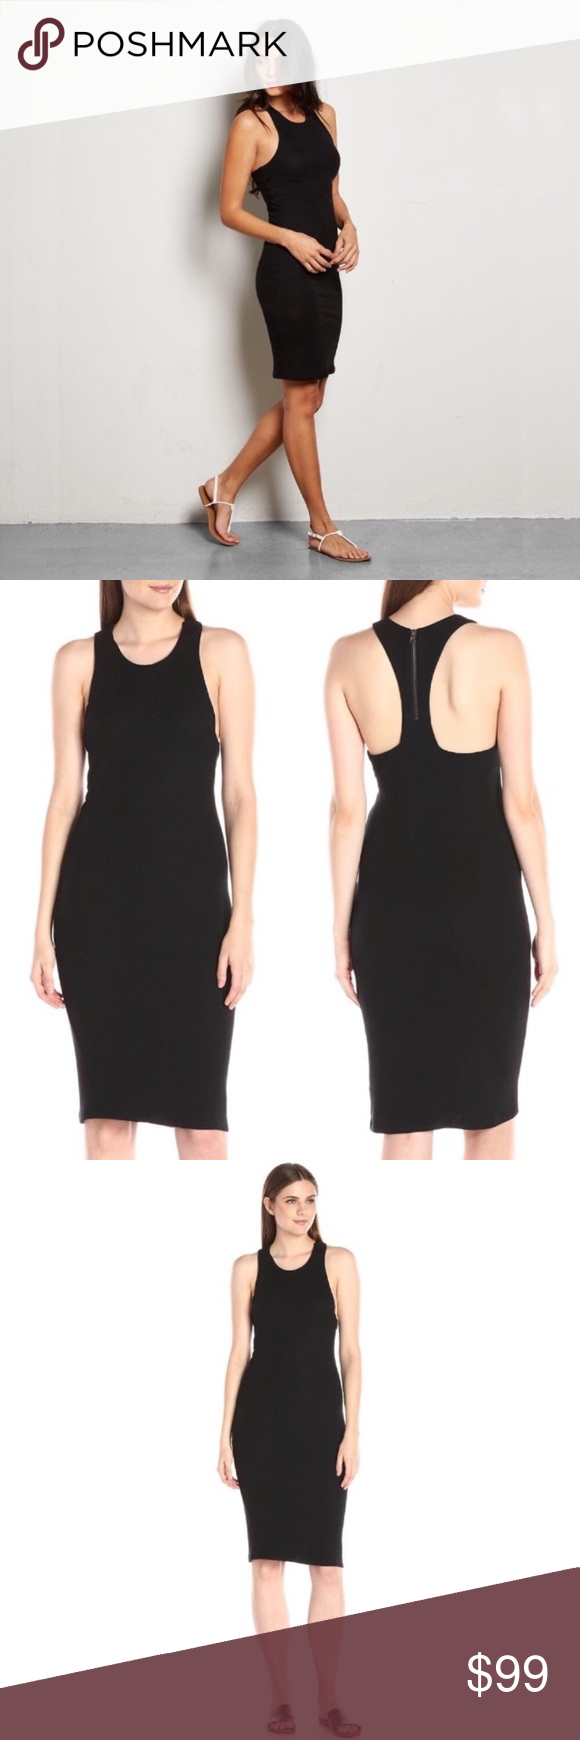 Clearance Super Soft Ribbed Racerback Dress The Most Unbelievably Soft Comfortable Fabric In A Casual L Ribbed Racerback Dress Racerback Midi Dress Fashion [ 1740 x 580 Pixel ]